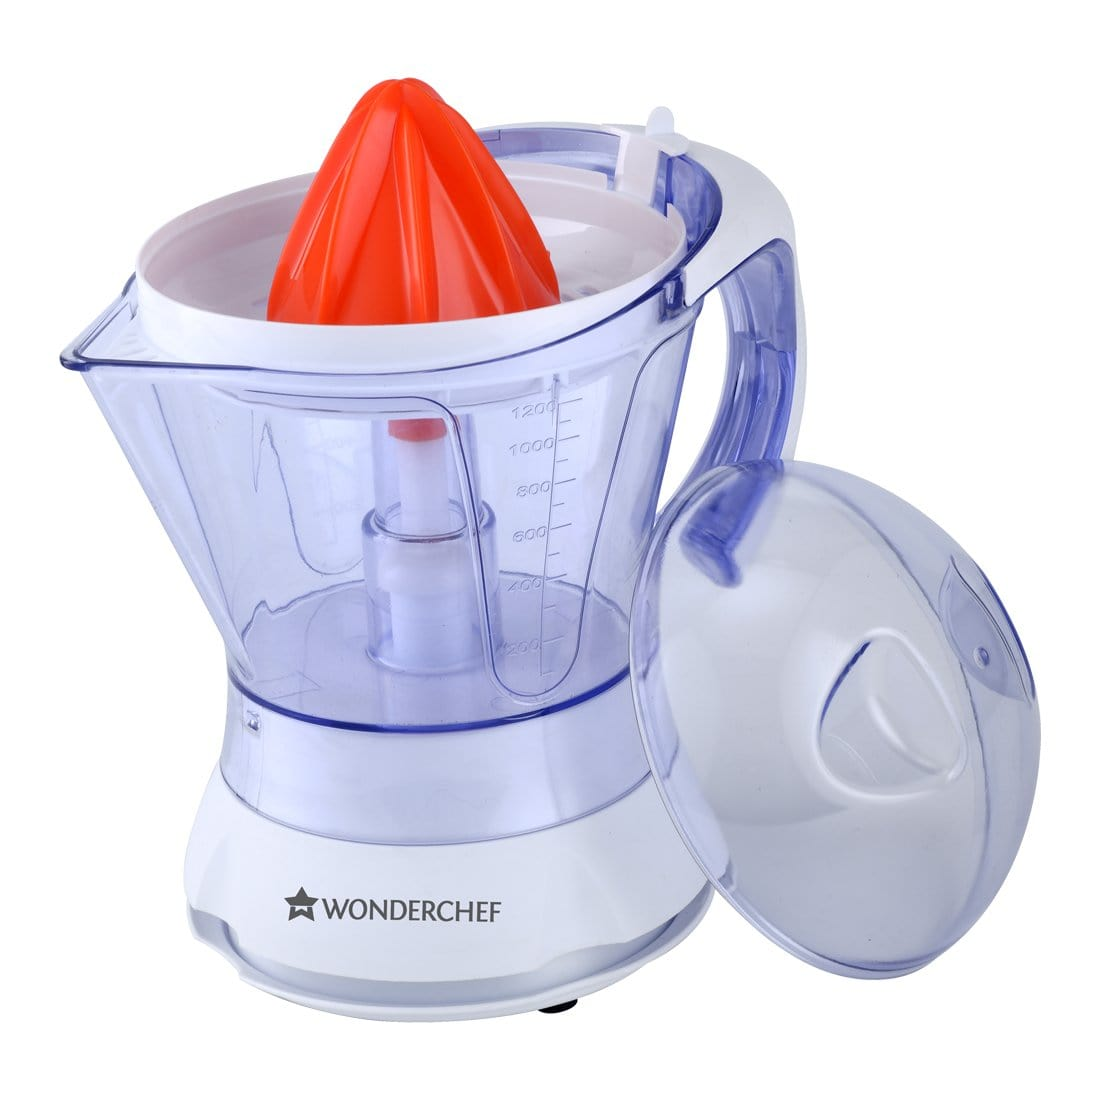 Wonderchef Citrus Juicer